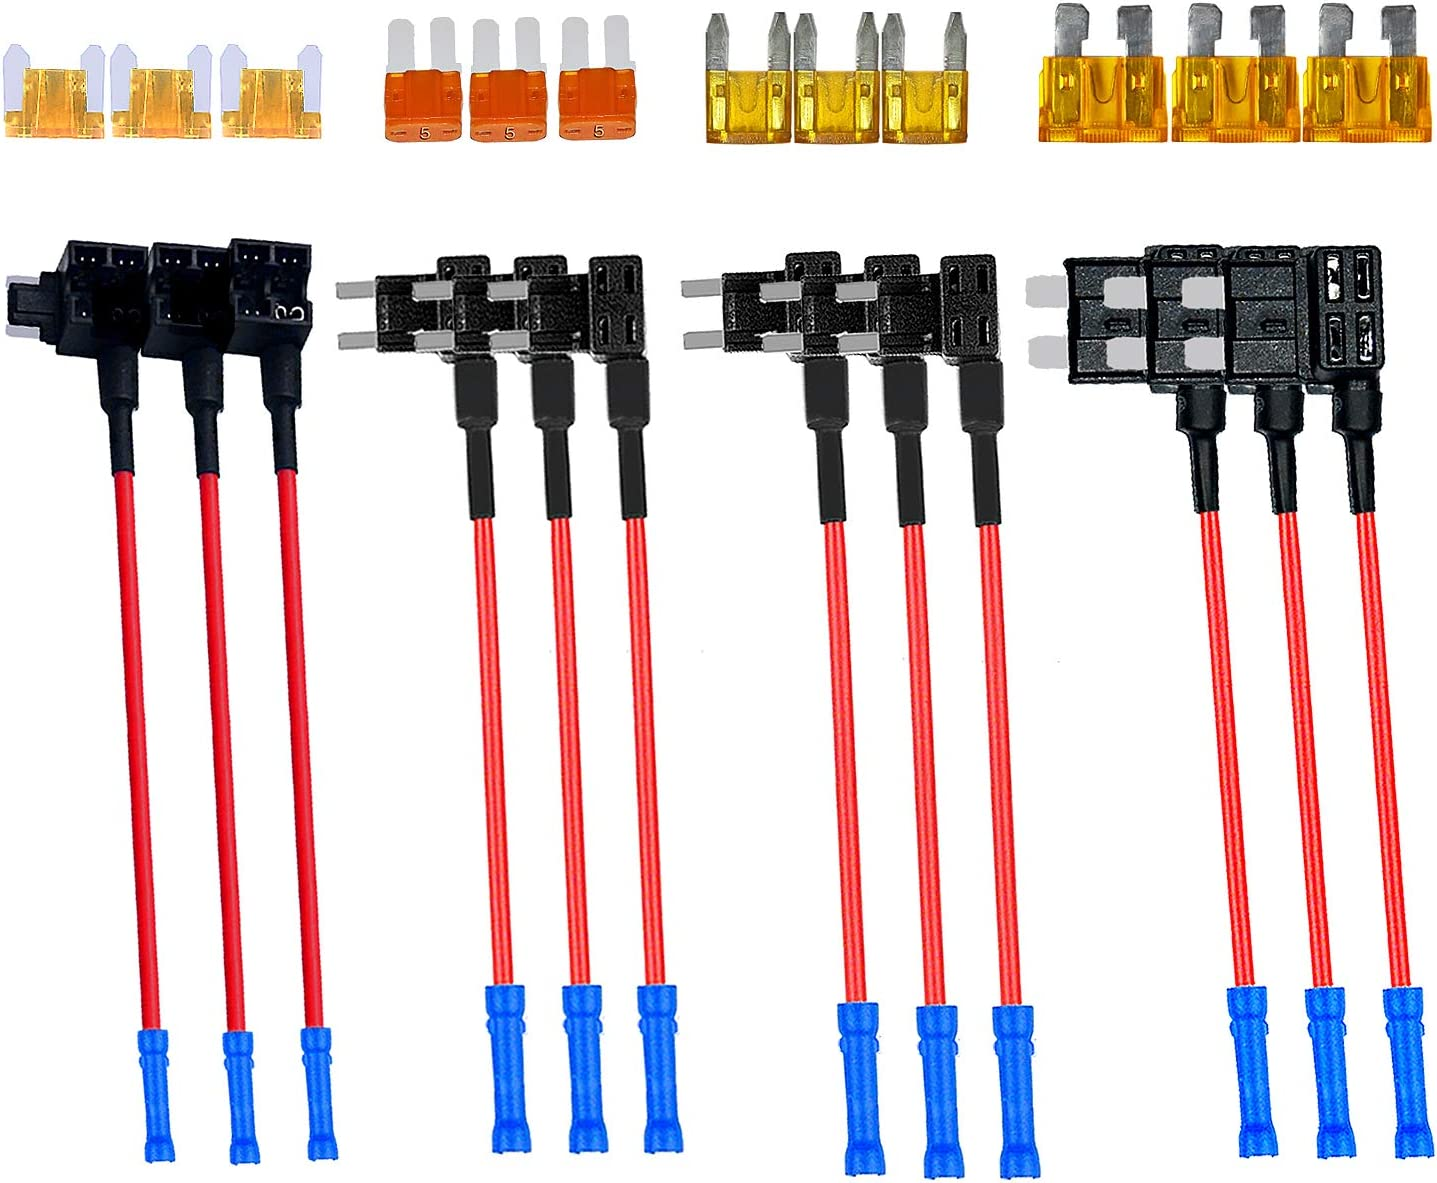 4 Types 12V Add-a-Circuit Adapter & Fuse Kit - Muhize Fuse Tap Fuse Holder with MICRO2 Mini ATC ATS Low Profile Tap dapter for Cars Trucks Boats (12 Pack)